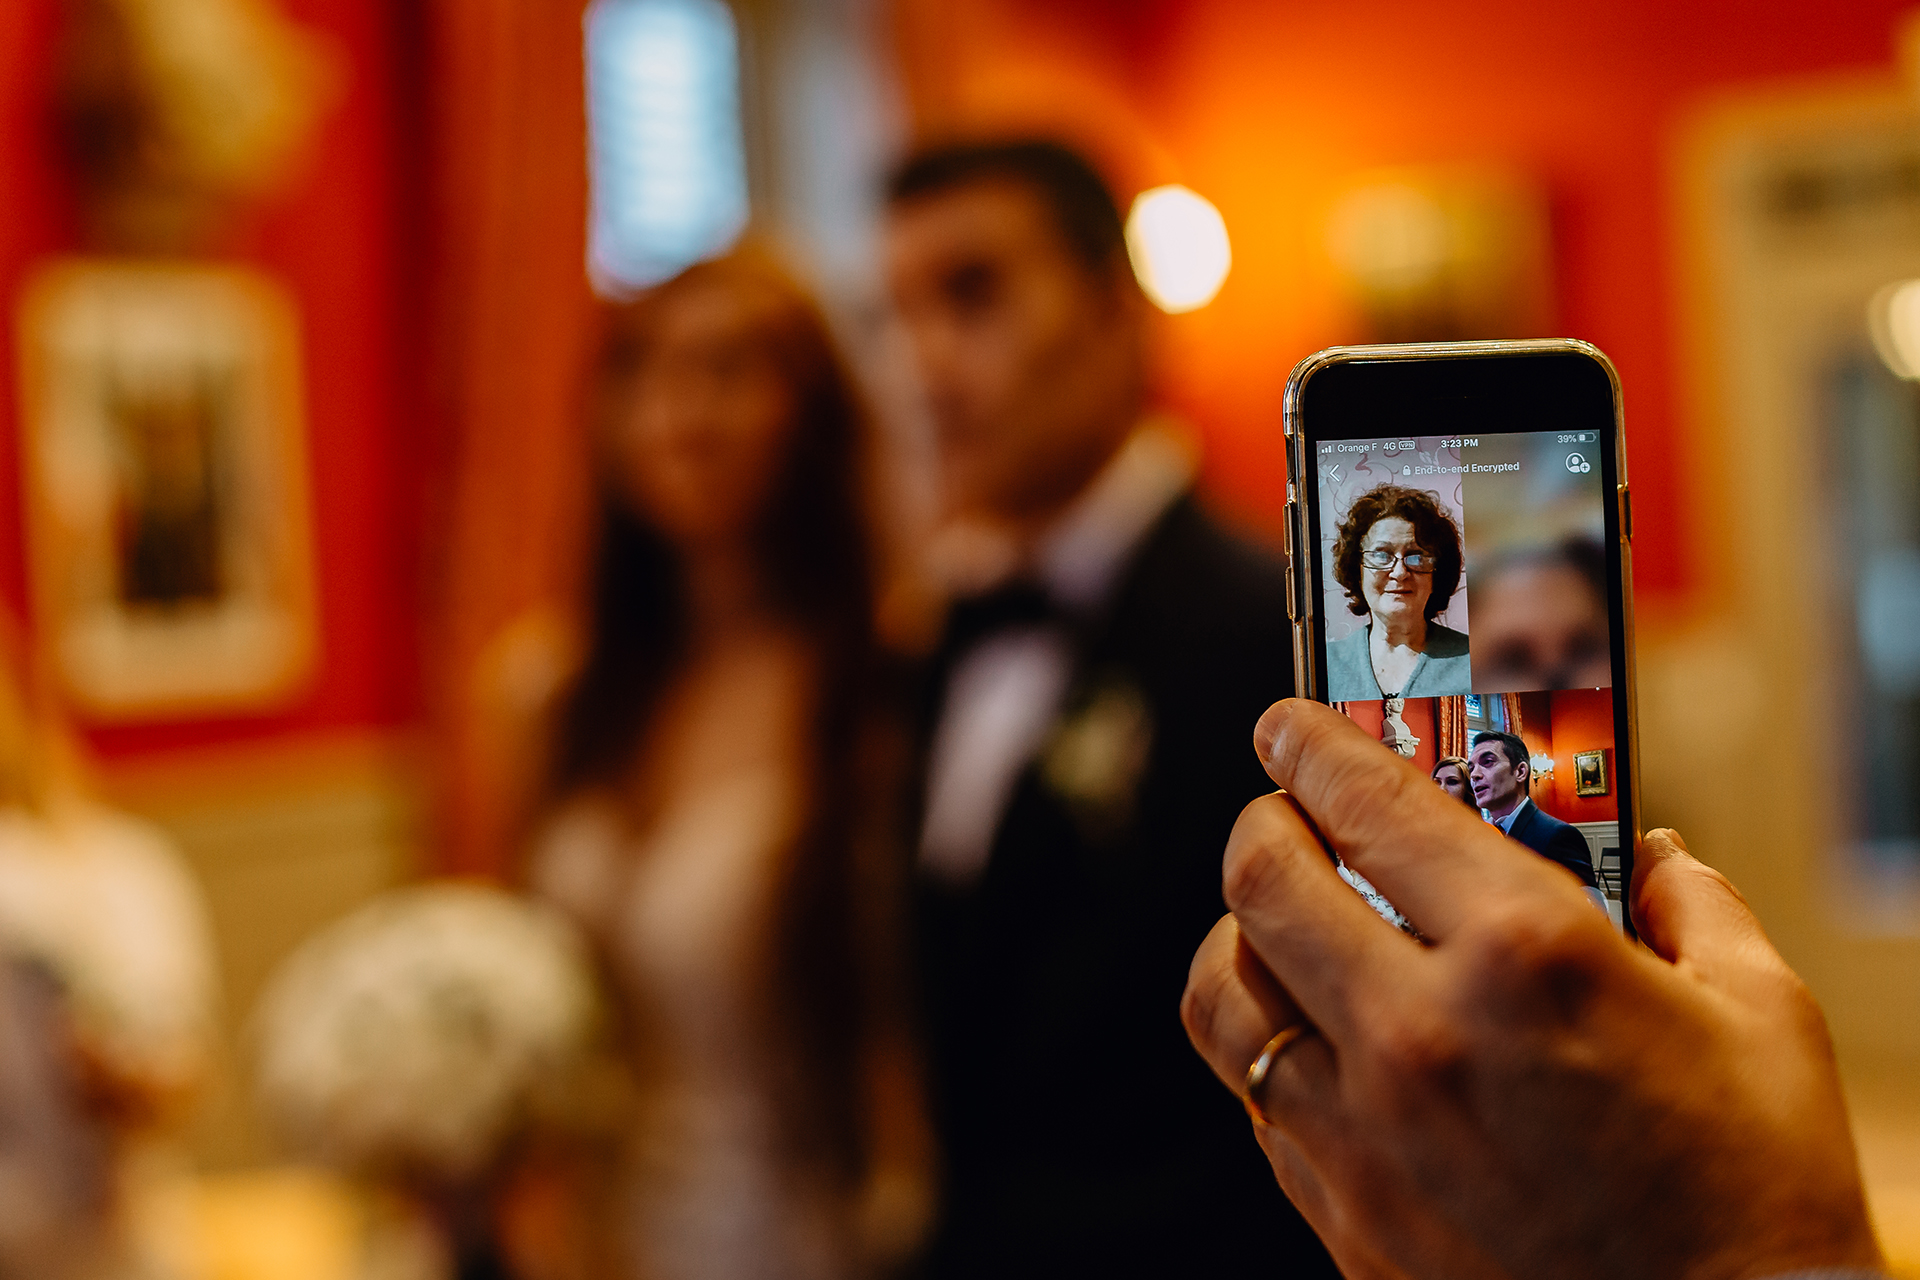 Rhône Town Hall Civil Wedding Ceremony Image | The bride and groom's families follow the ceremony by a video call